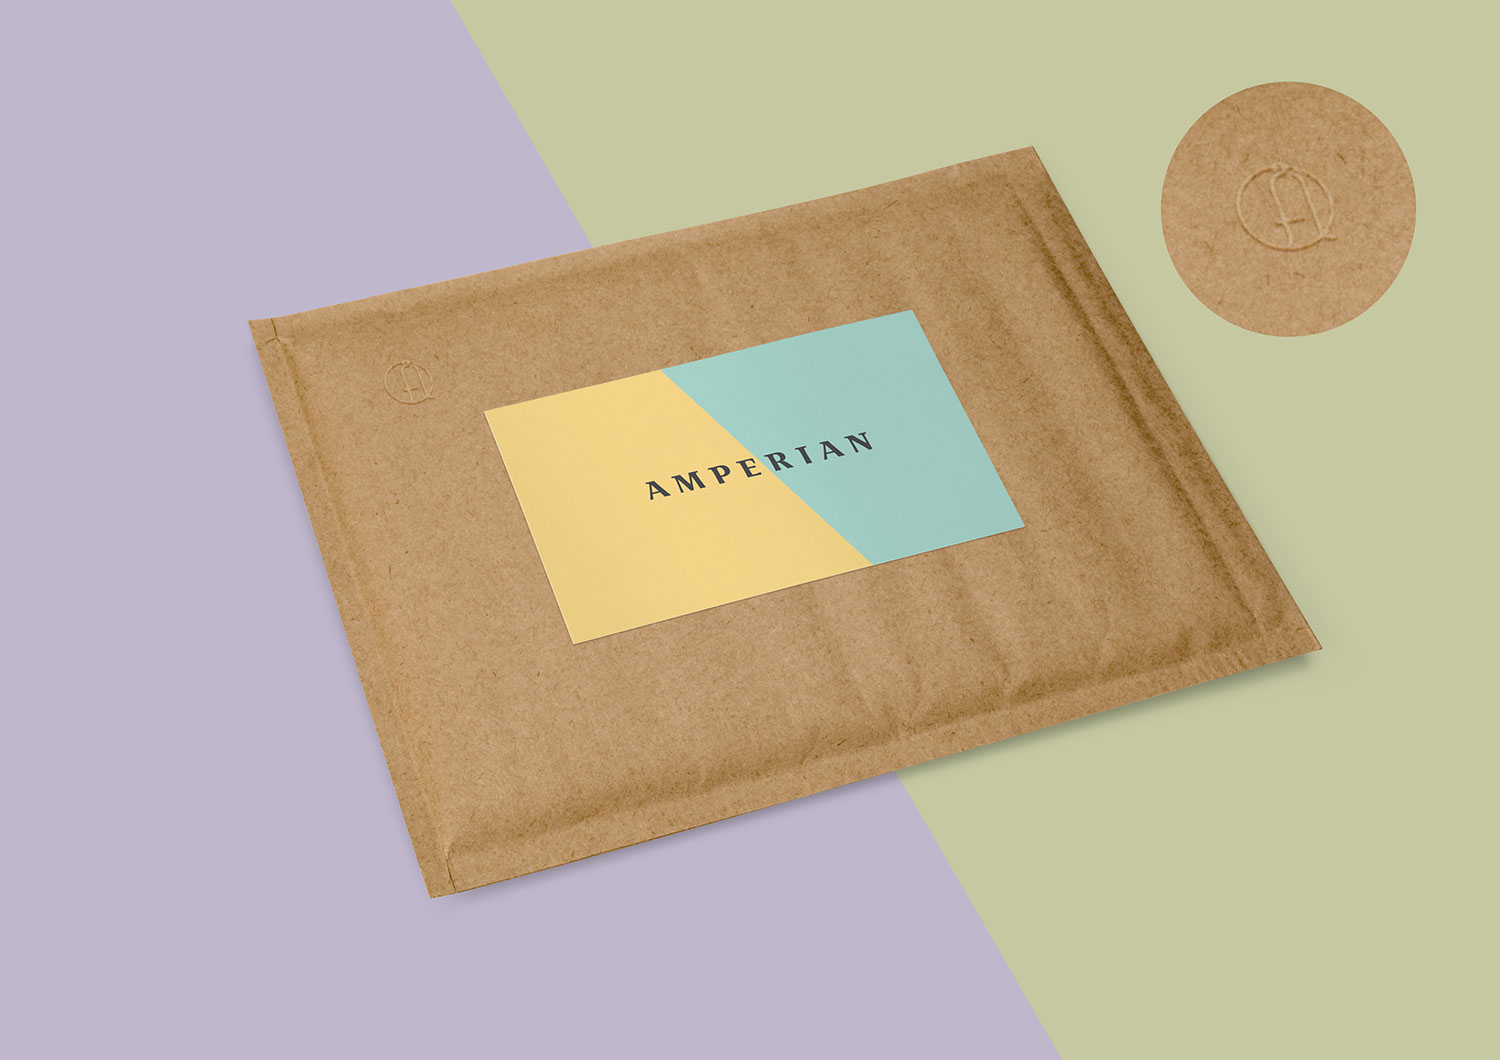 Amperian SG branding corporate identity design - Envelope with emboss.